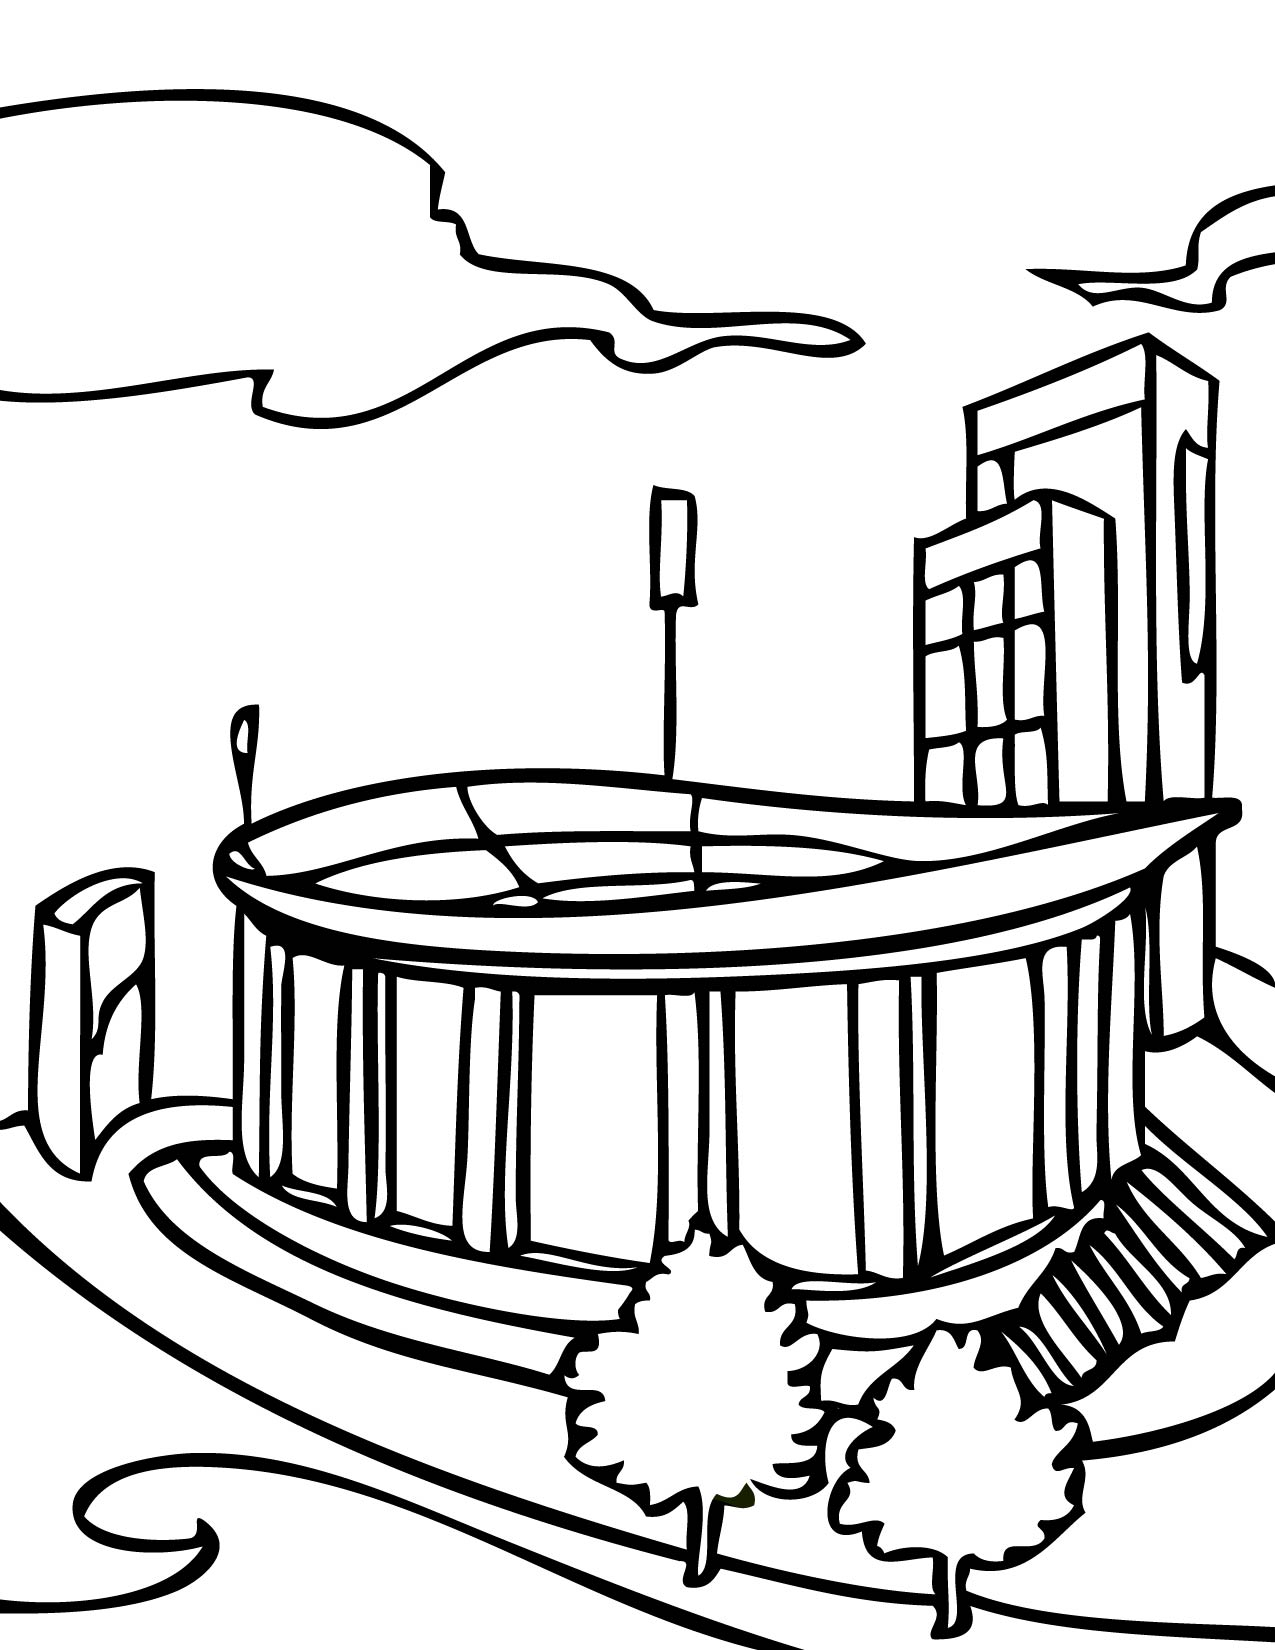 Yankee Stadium Coloring Pages | Coloring Pages